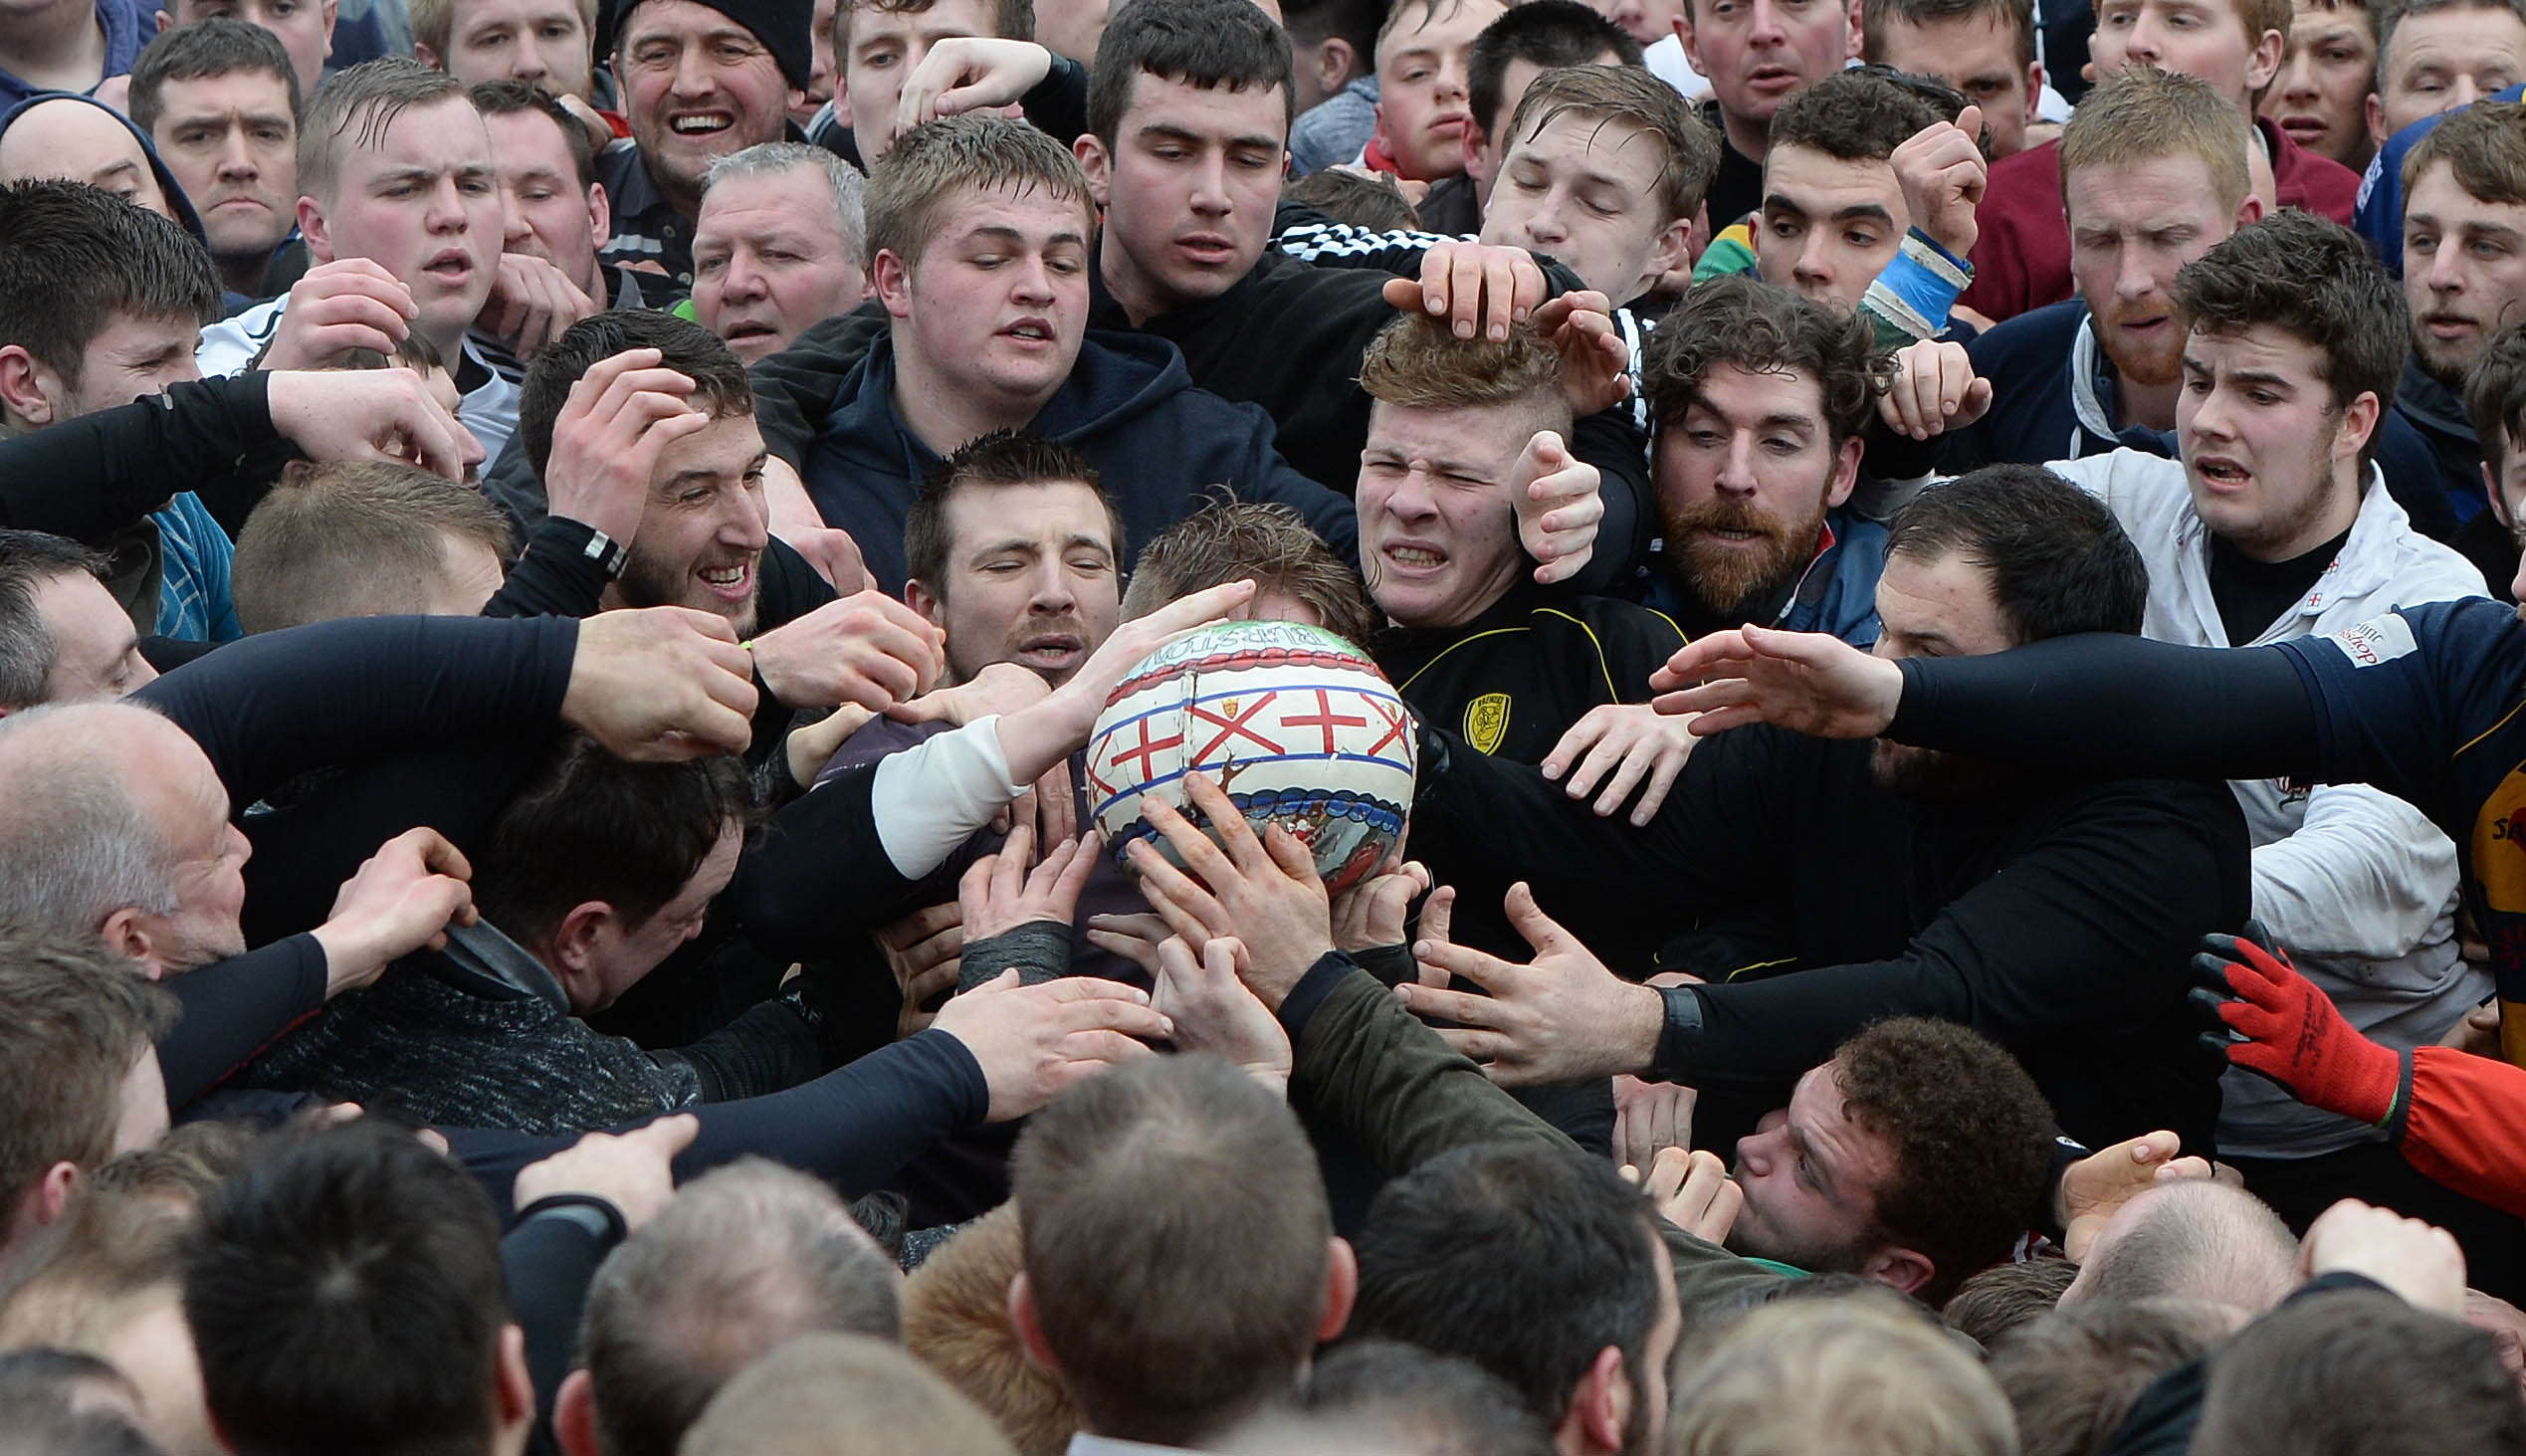 Players fight over the ball in Ashbourne (Joe Giddens/PA)